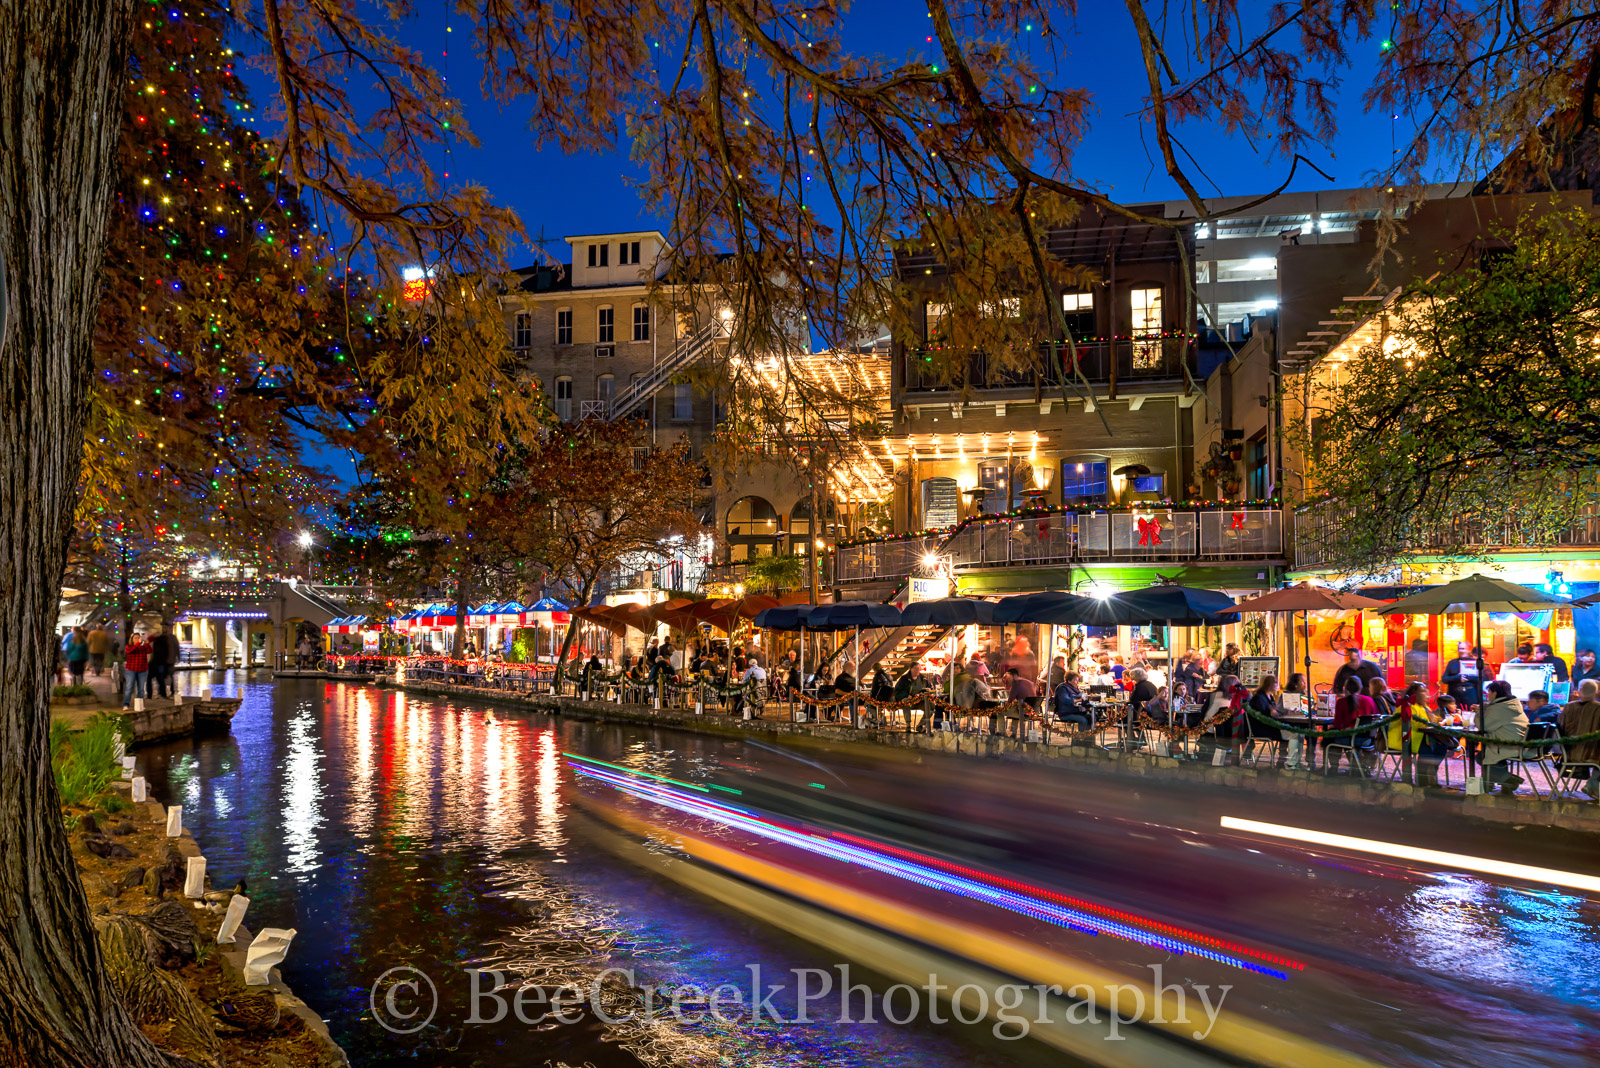 Christmas, Christmas on the riverwalk, Riverwalk, San Antonio, boat decorations, city, colorful, decorations, holiday, lights, texas, trees, photo